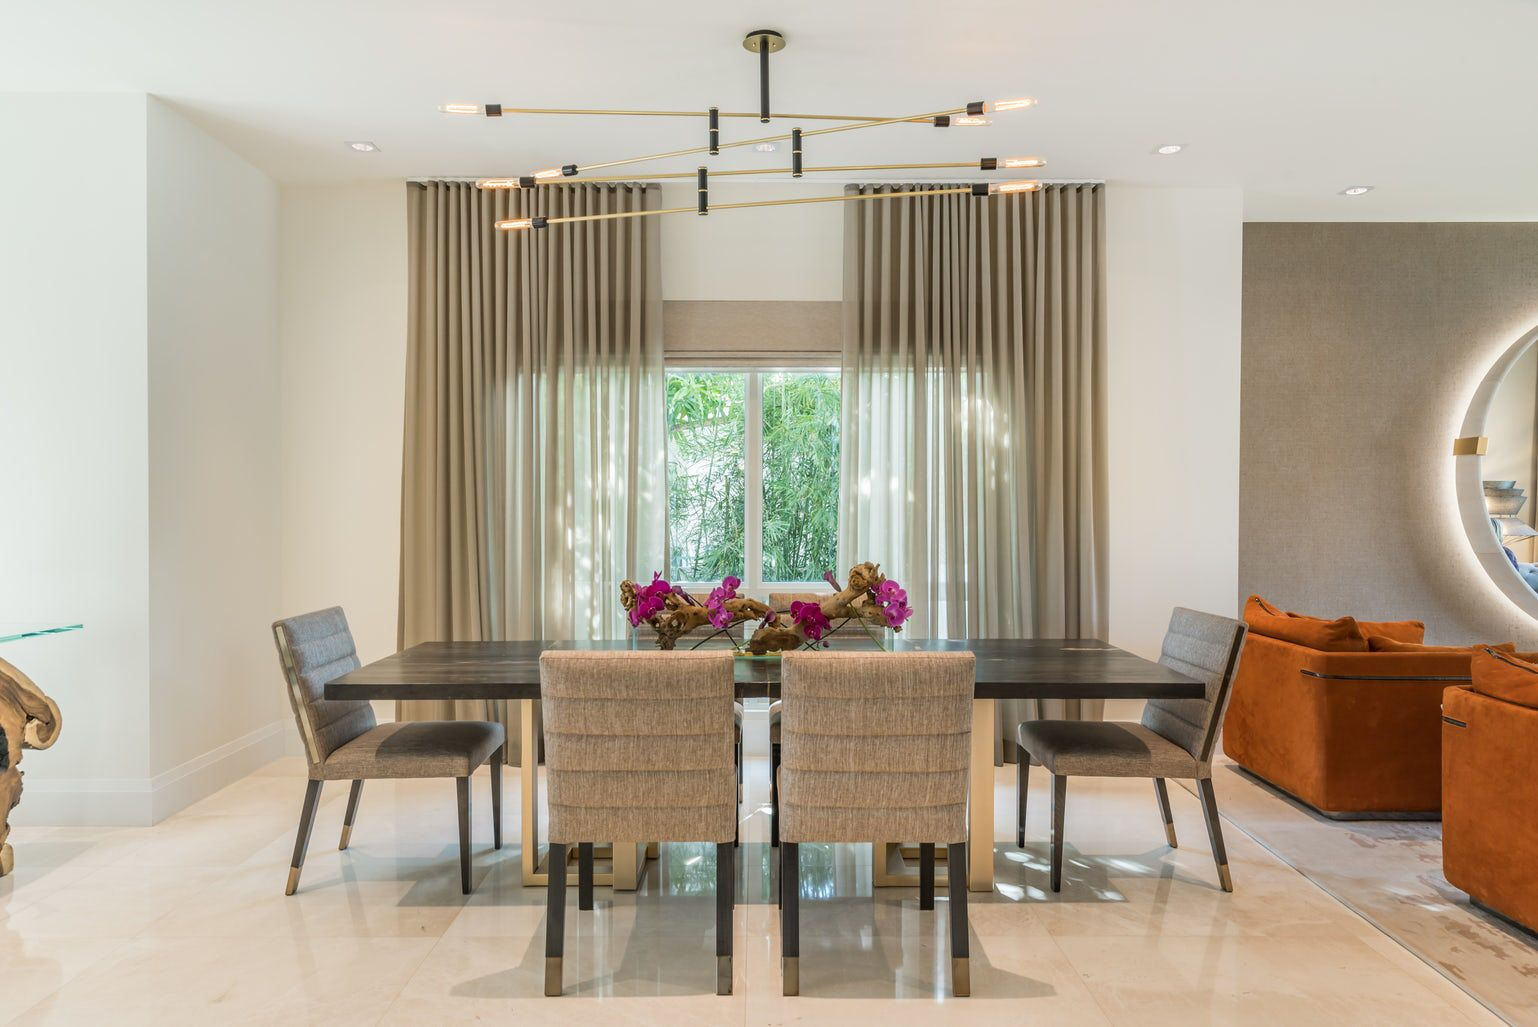 Adding a modern light fixture to a transitional space ...